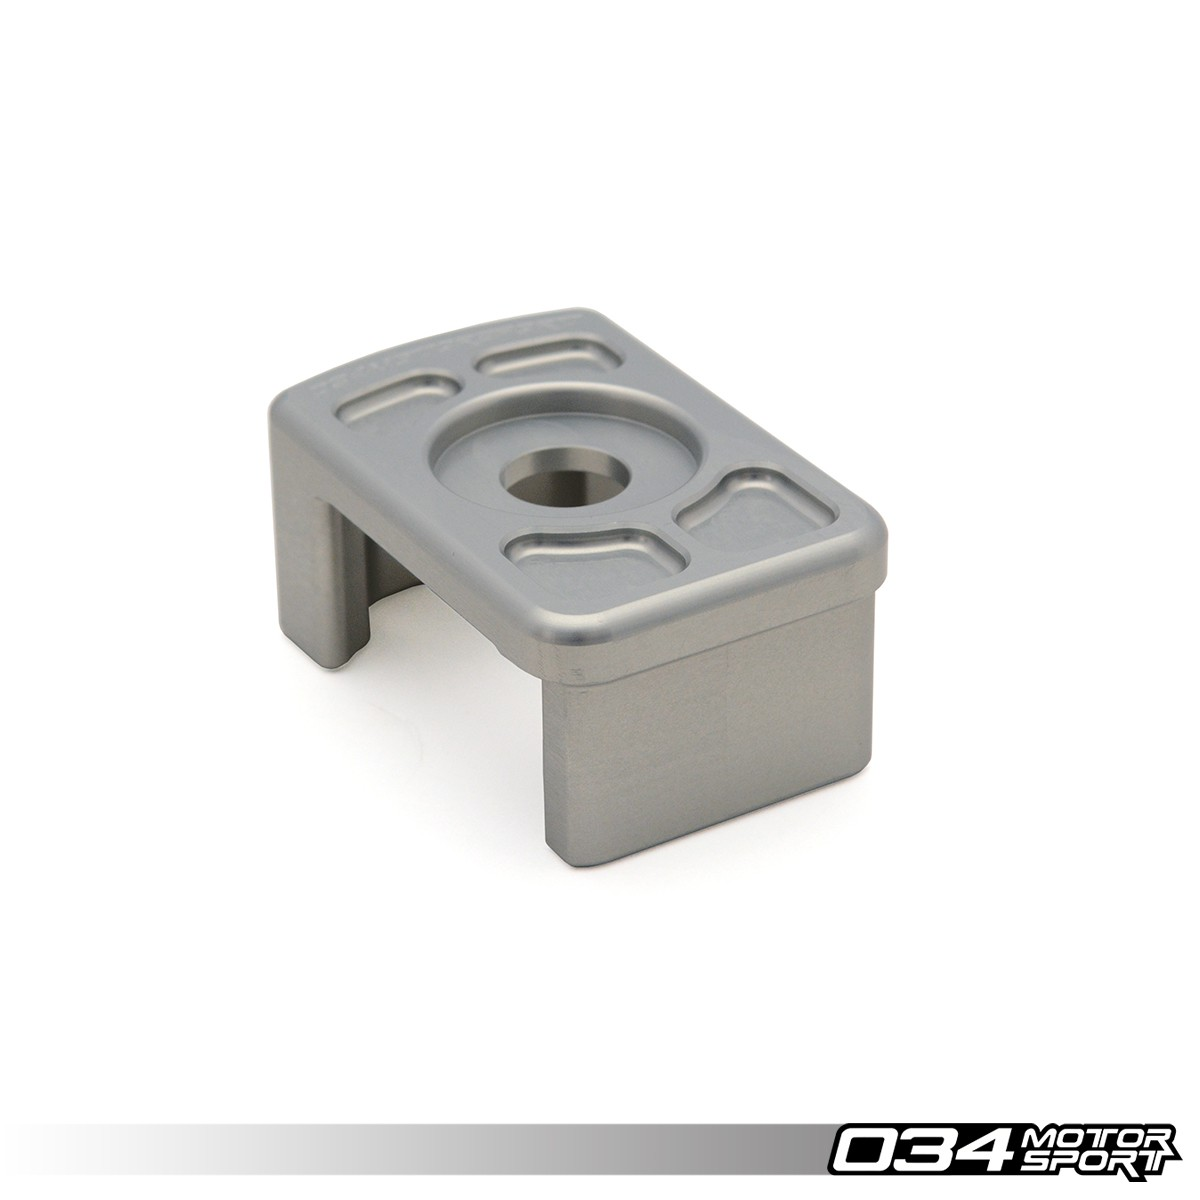 034 Mk6/Mk7 Golf/Jetta & Passat/A4 8J Lower Engine Mount Insert